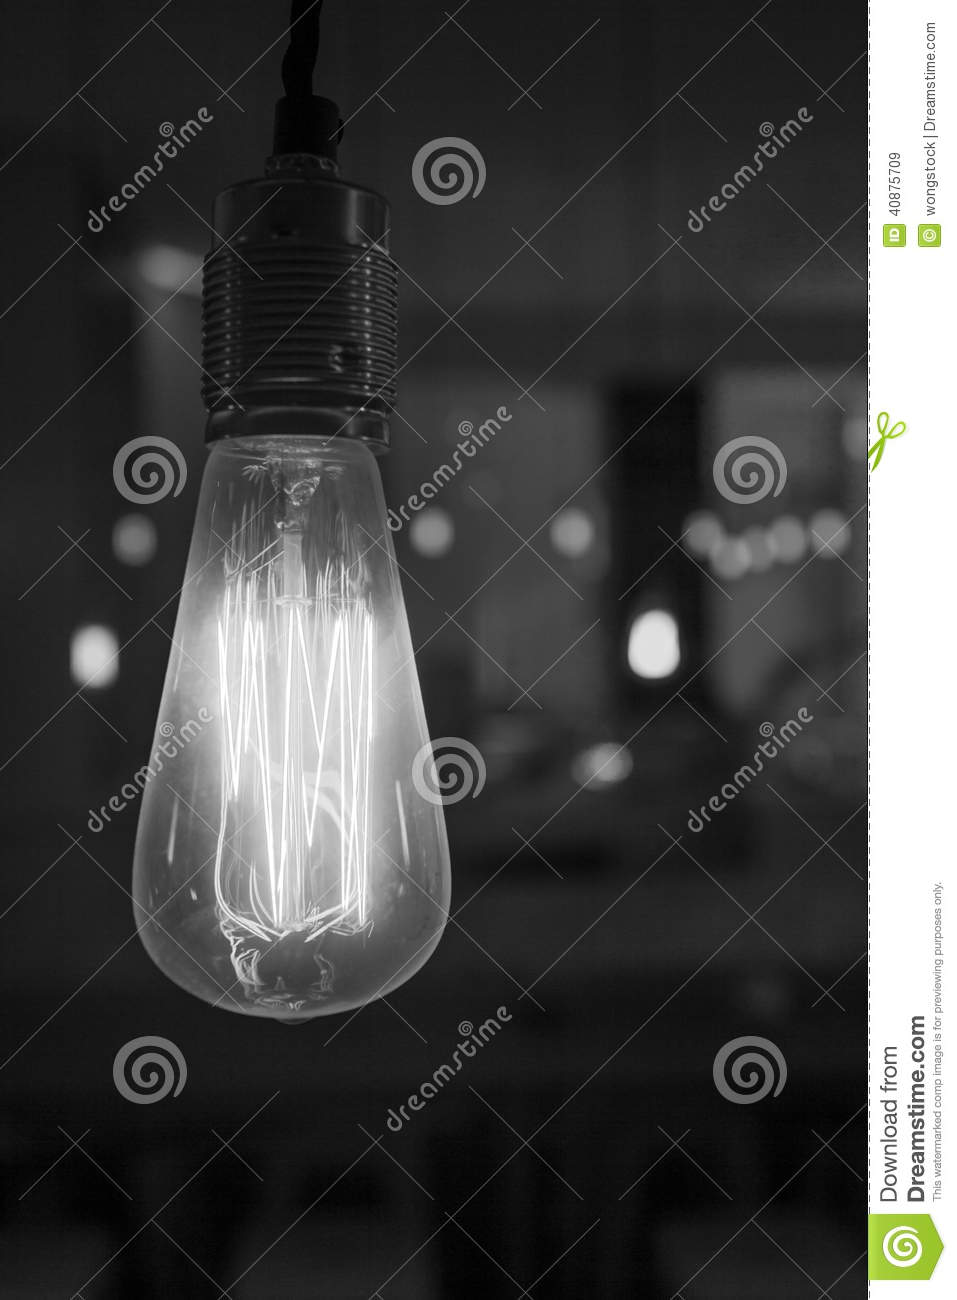 Glowing lightbulb dangling from the ceiling in black and white